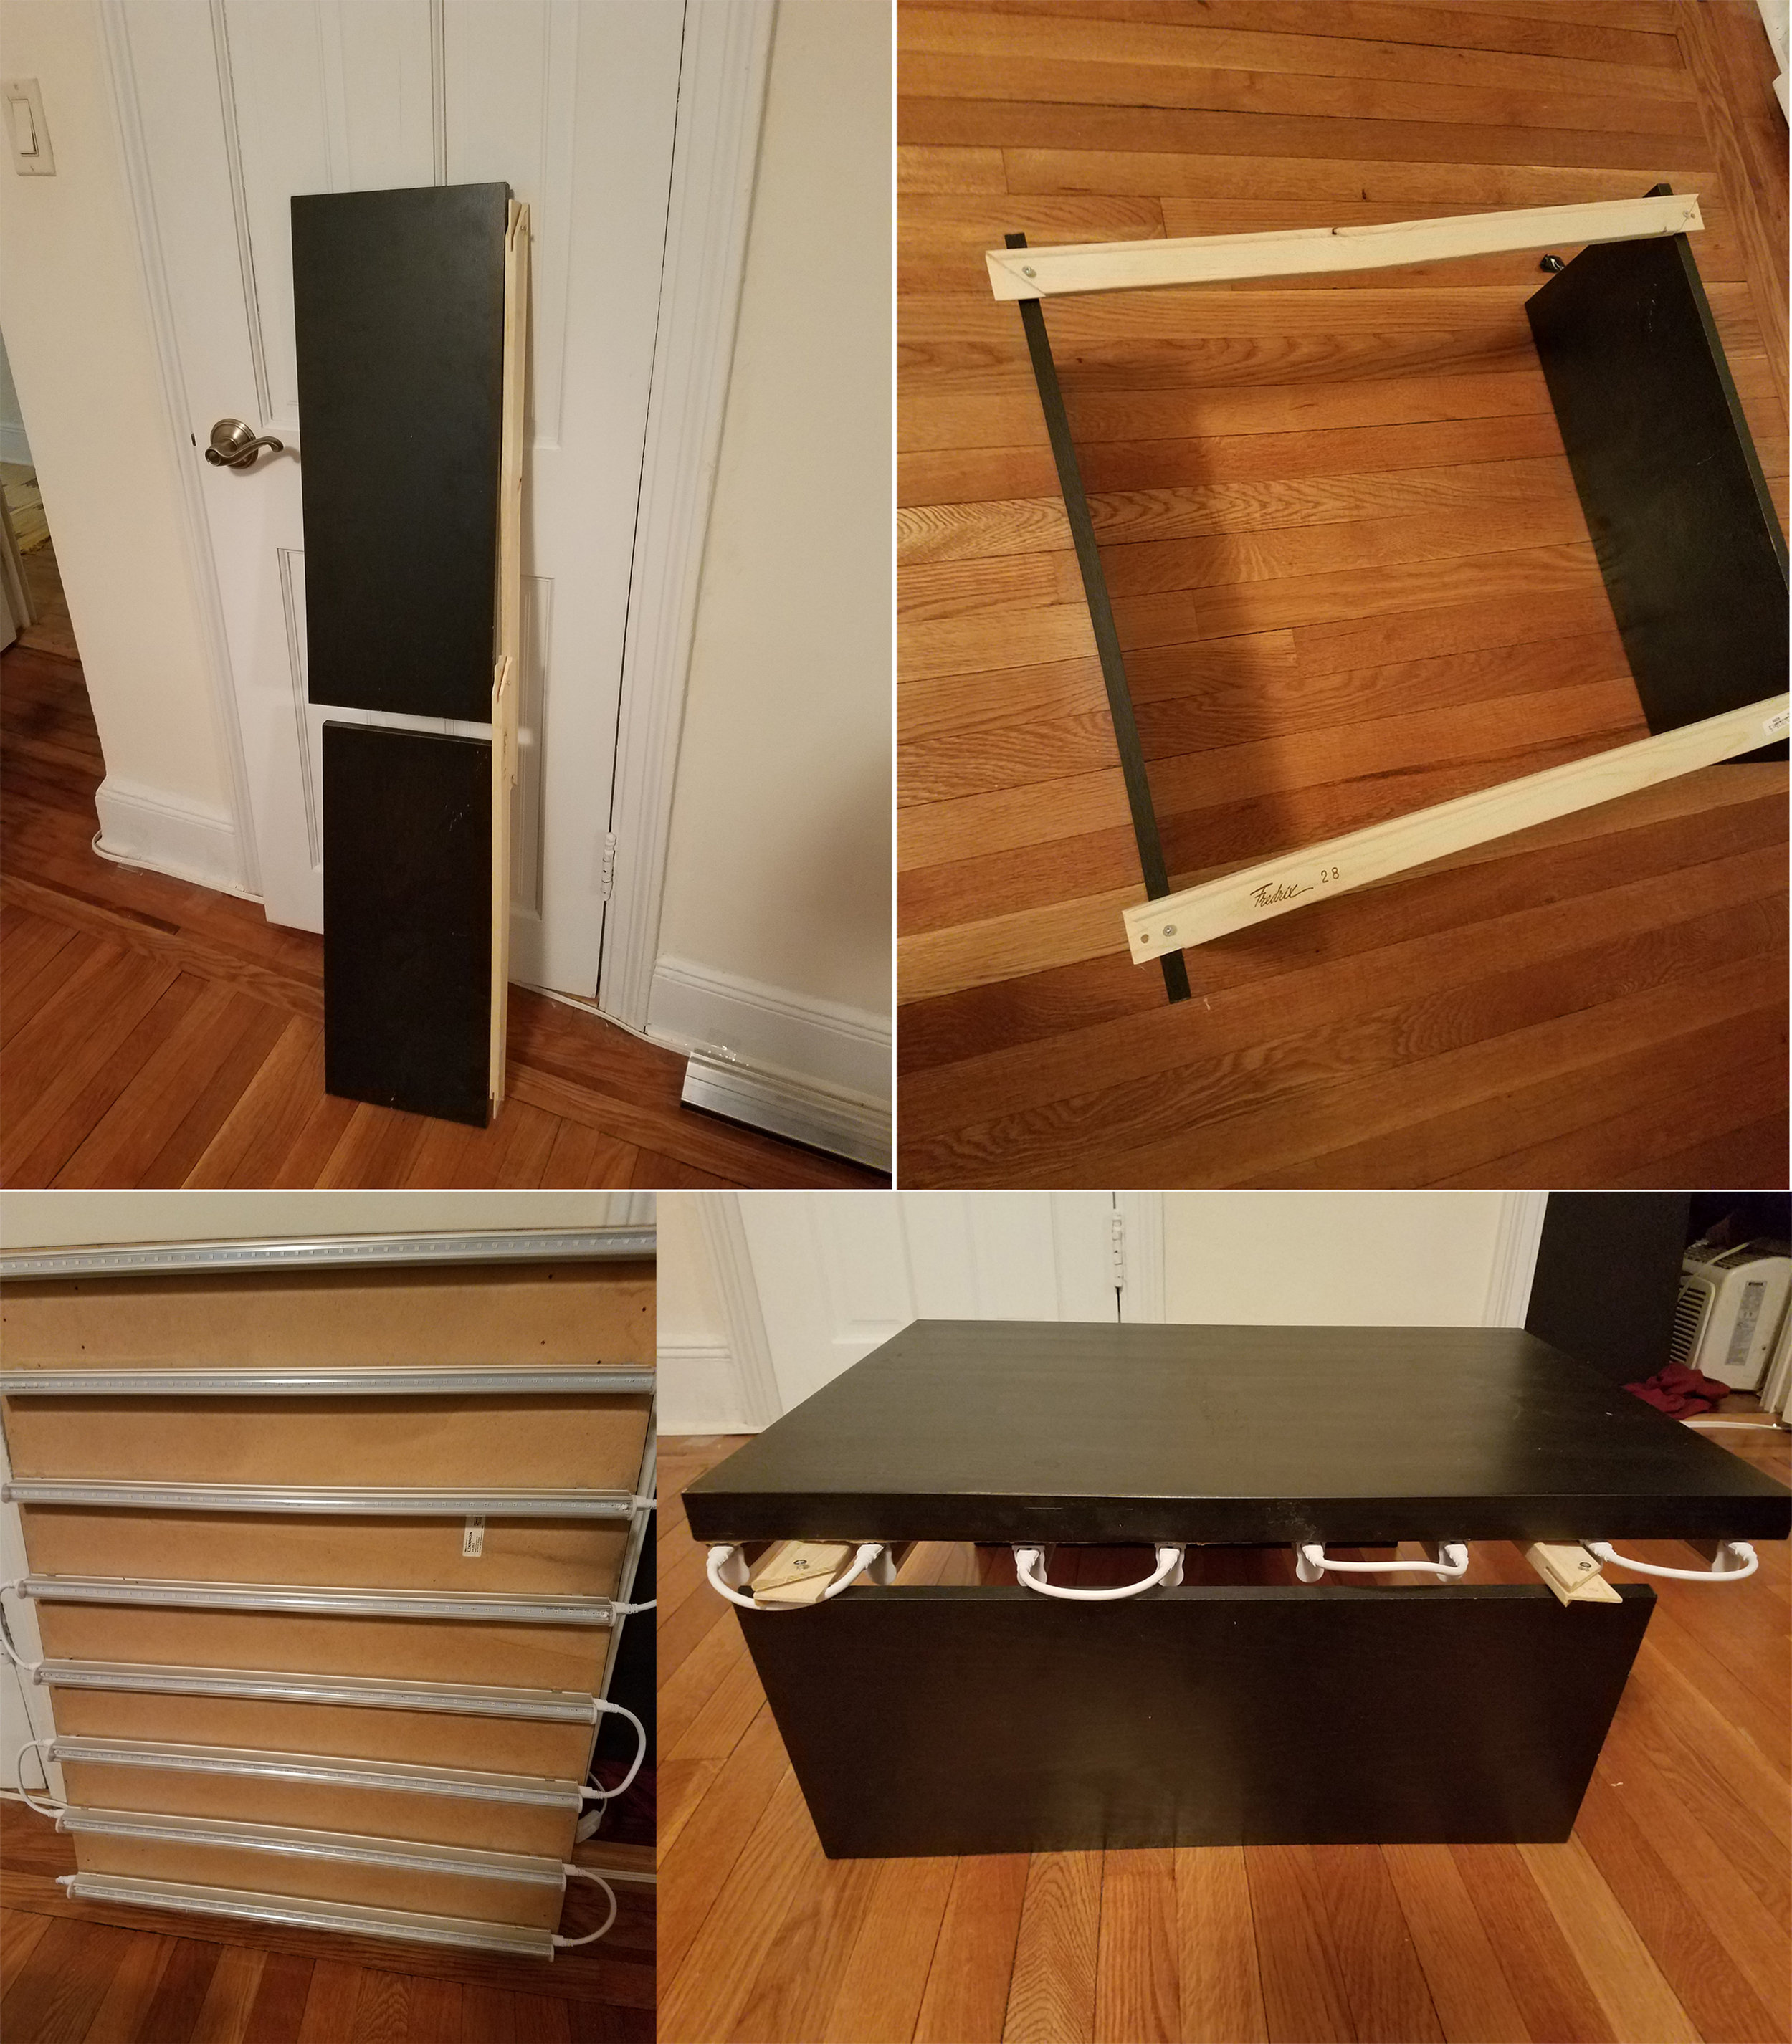 Because I live in a small-ish apartment in a big city I wanted to build a light box setup that was easily torn down and stored.  I built this accordion style base and mounted 8 2' UV LED Blacklight strips in 3.25 inch spacers on an ikea tabletop I had laying around.  It's light weight and I can set this on top of my accordion base and my box is built.  I likewise slide in a piece of black foam core to stop any reflections that might be caused by the hardwood floor.